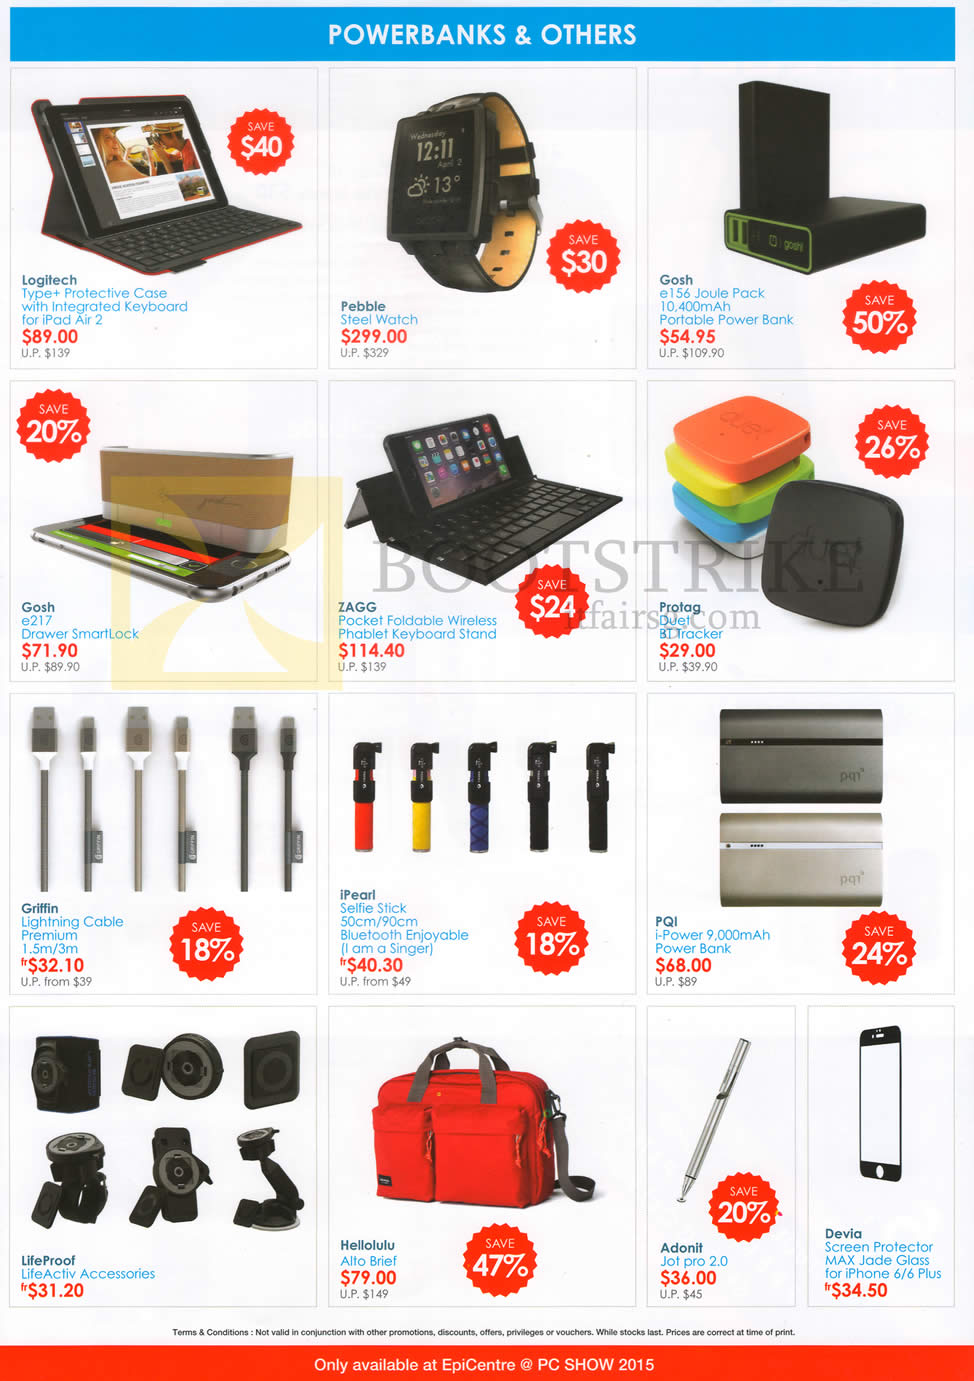 PC SHOW 2015 price list image brochure of EpiCentre Powerbanks, Lightning Cables, Keyboard Stand, Cases, LifeActiv Accessories, Devia Screen Protector